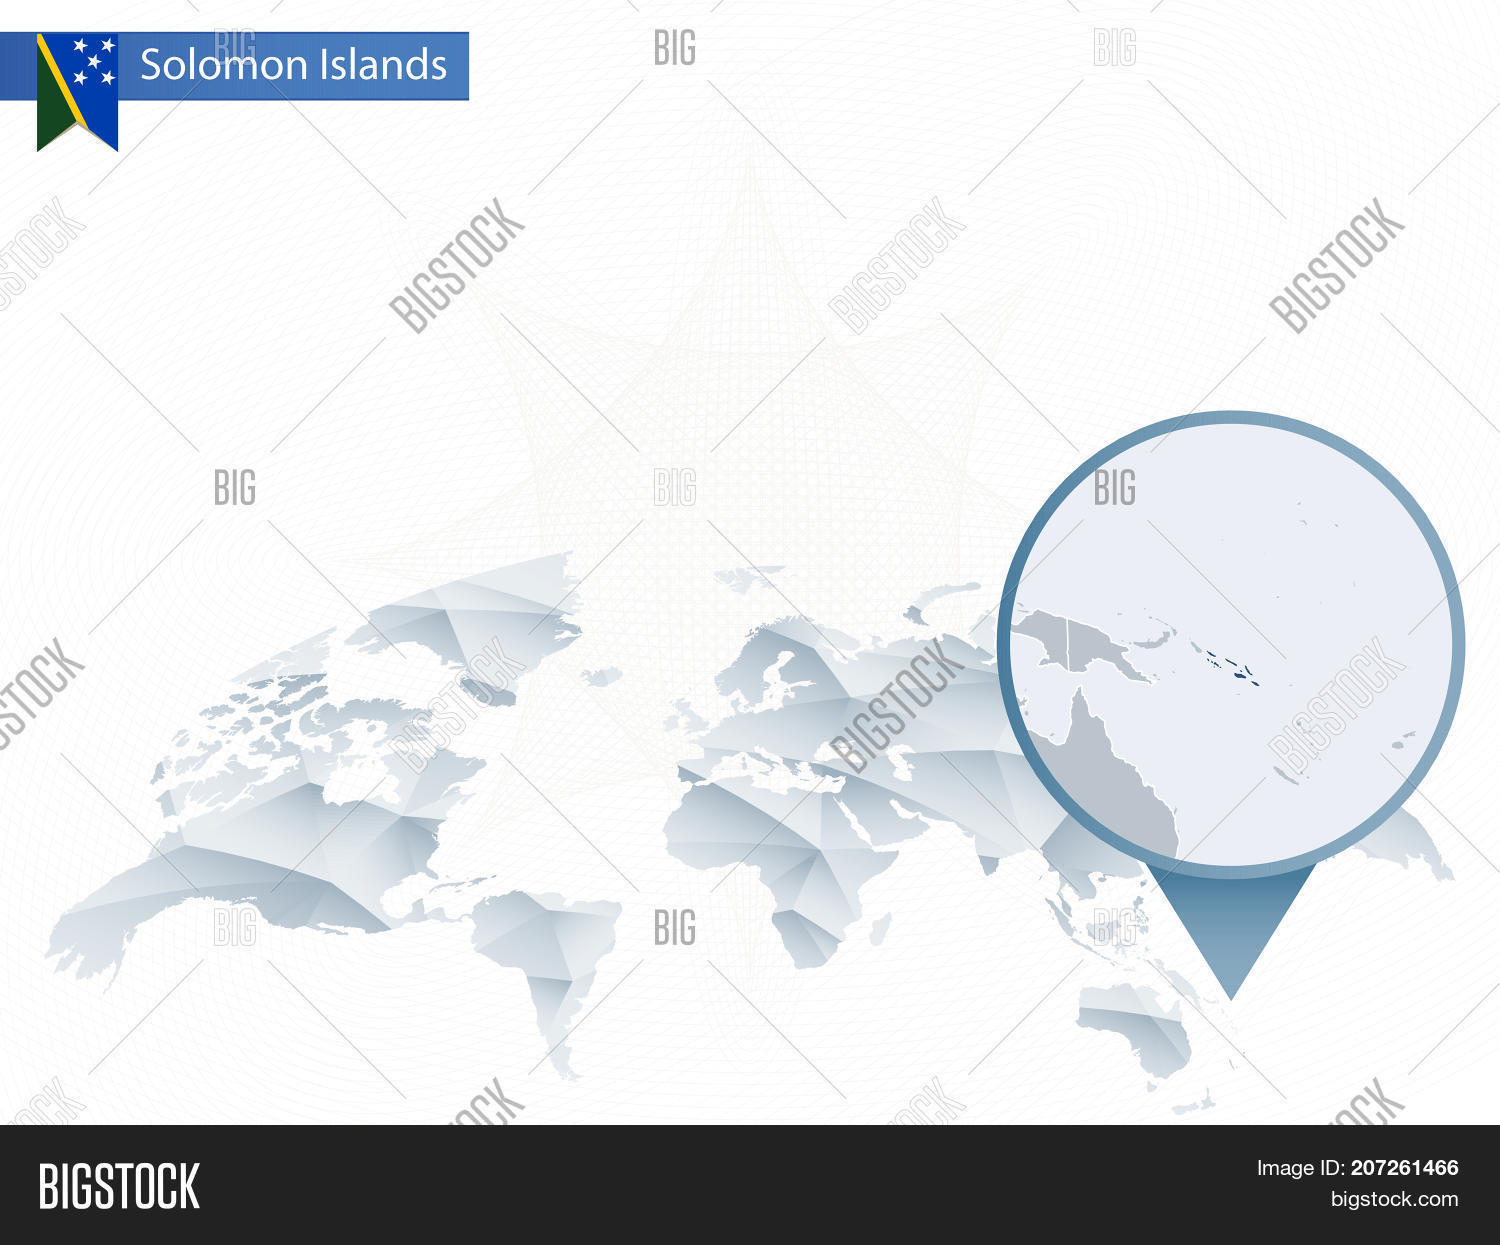 Solomon Islands World Map.Abstract Rounded Vector Photo Free Trial Bigstock